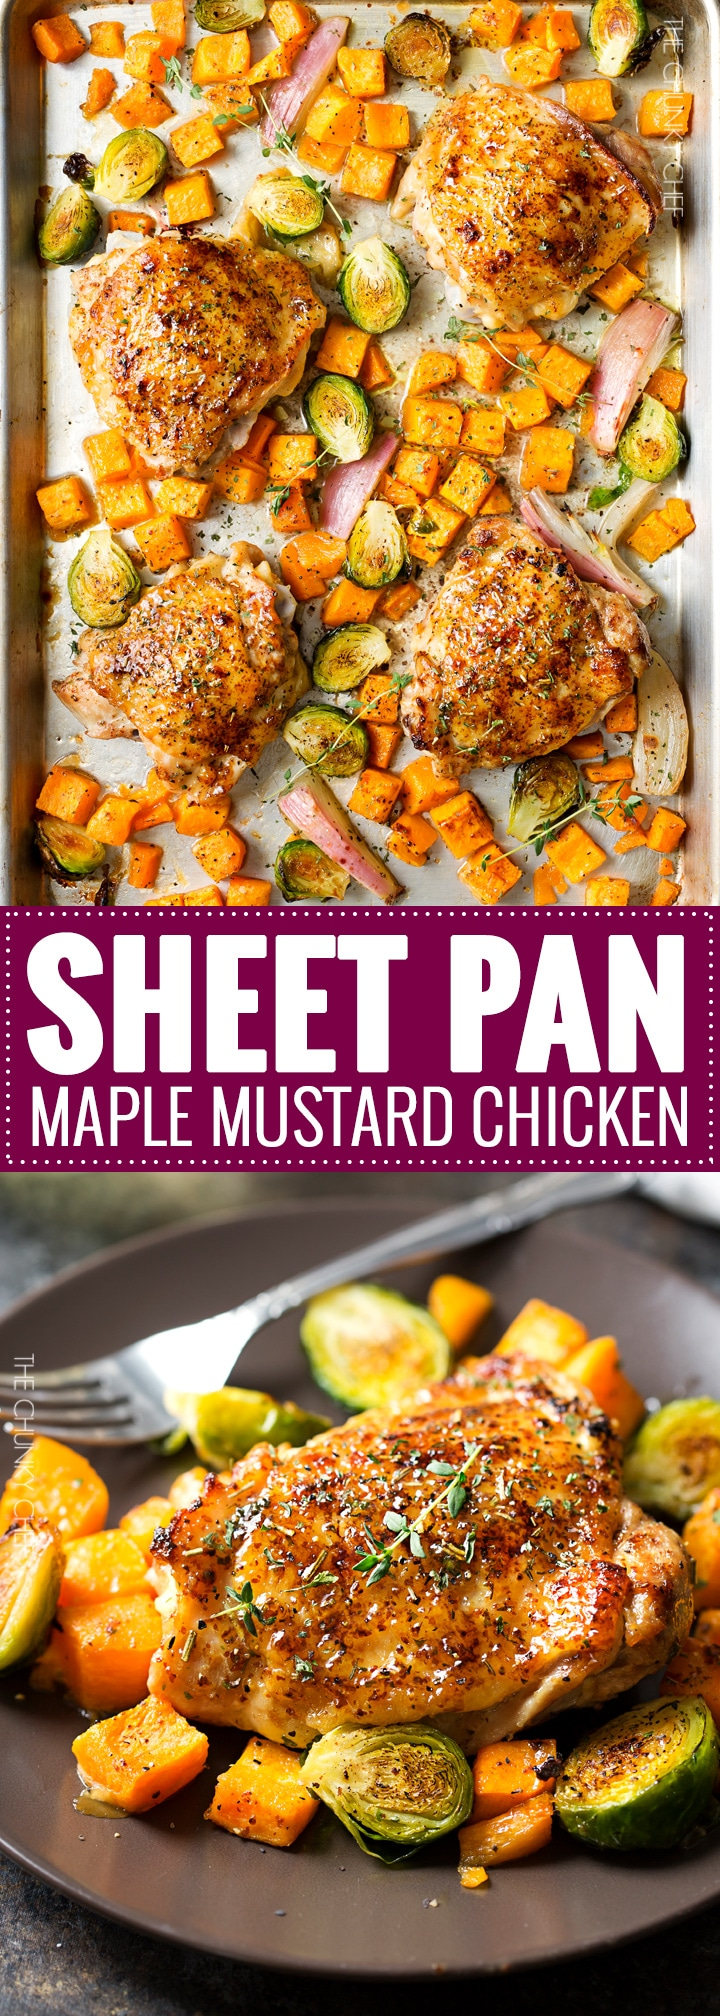 de8e0e551c45 Sheet Pan Maple Mustard Roasted Chicken - The Chunky Chef